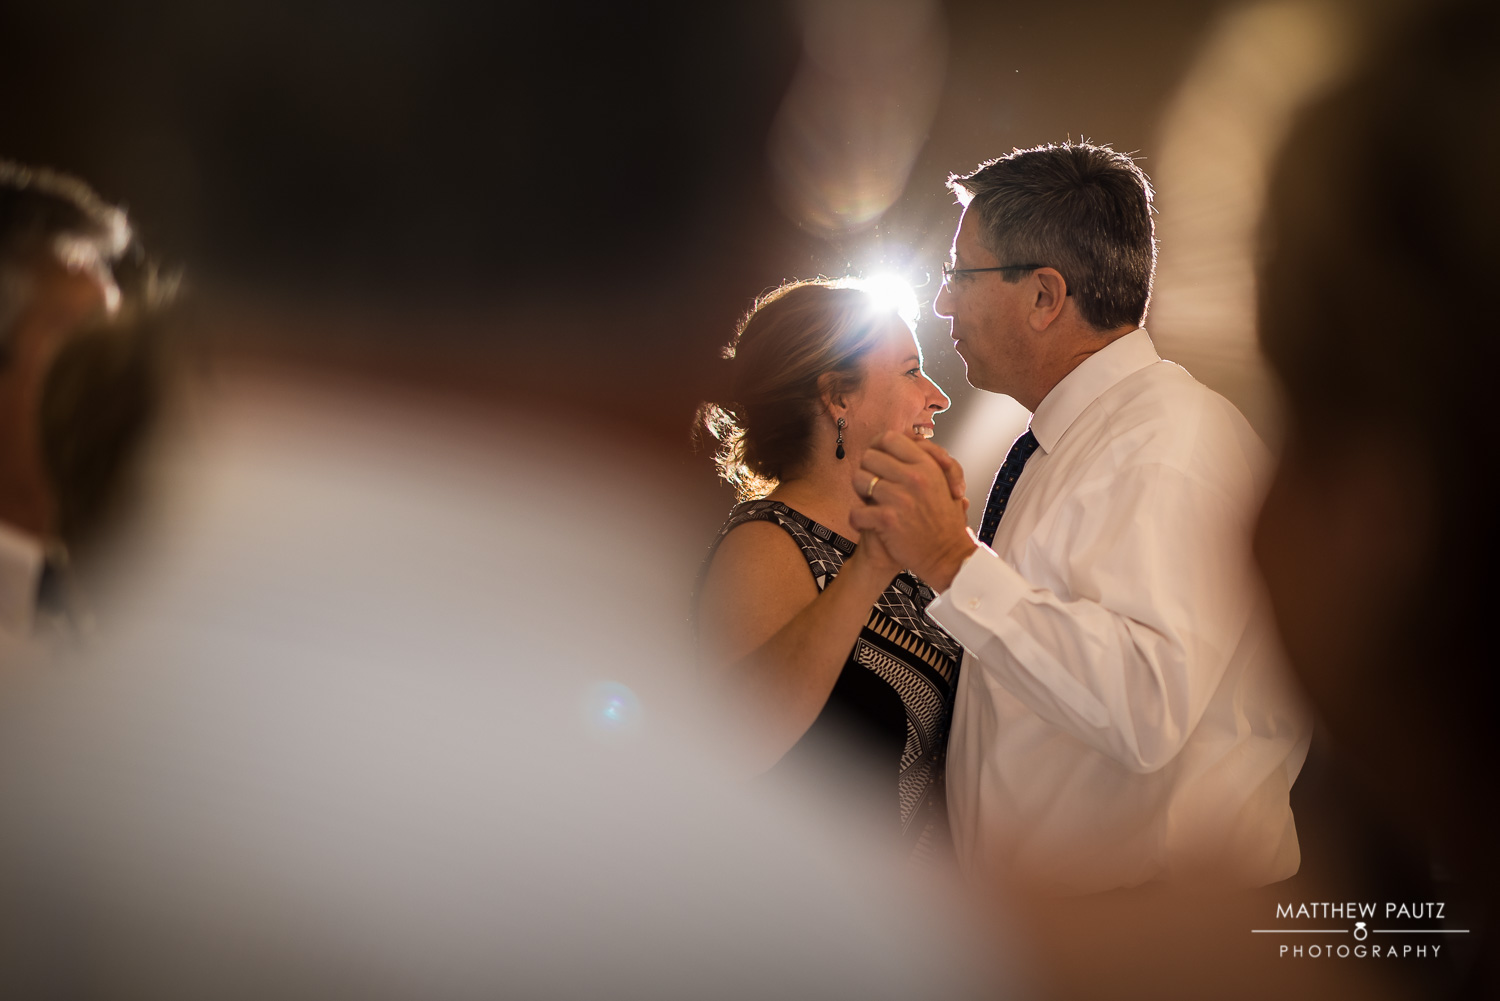 Wedding Photography at The Commerce Club, Greenville